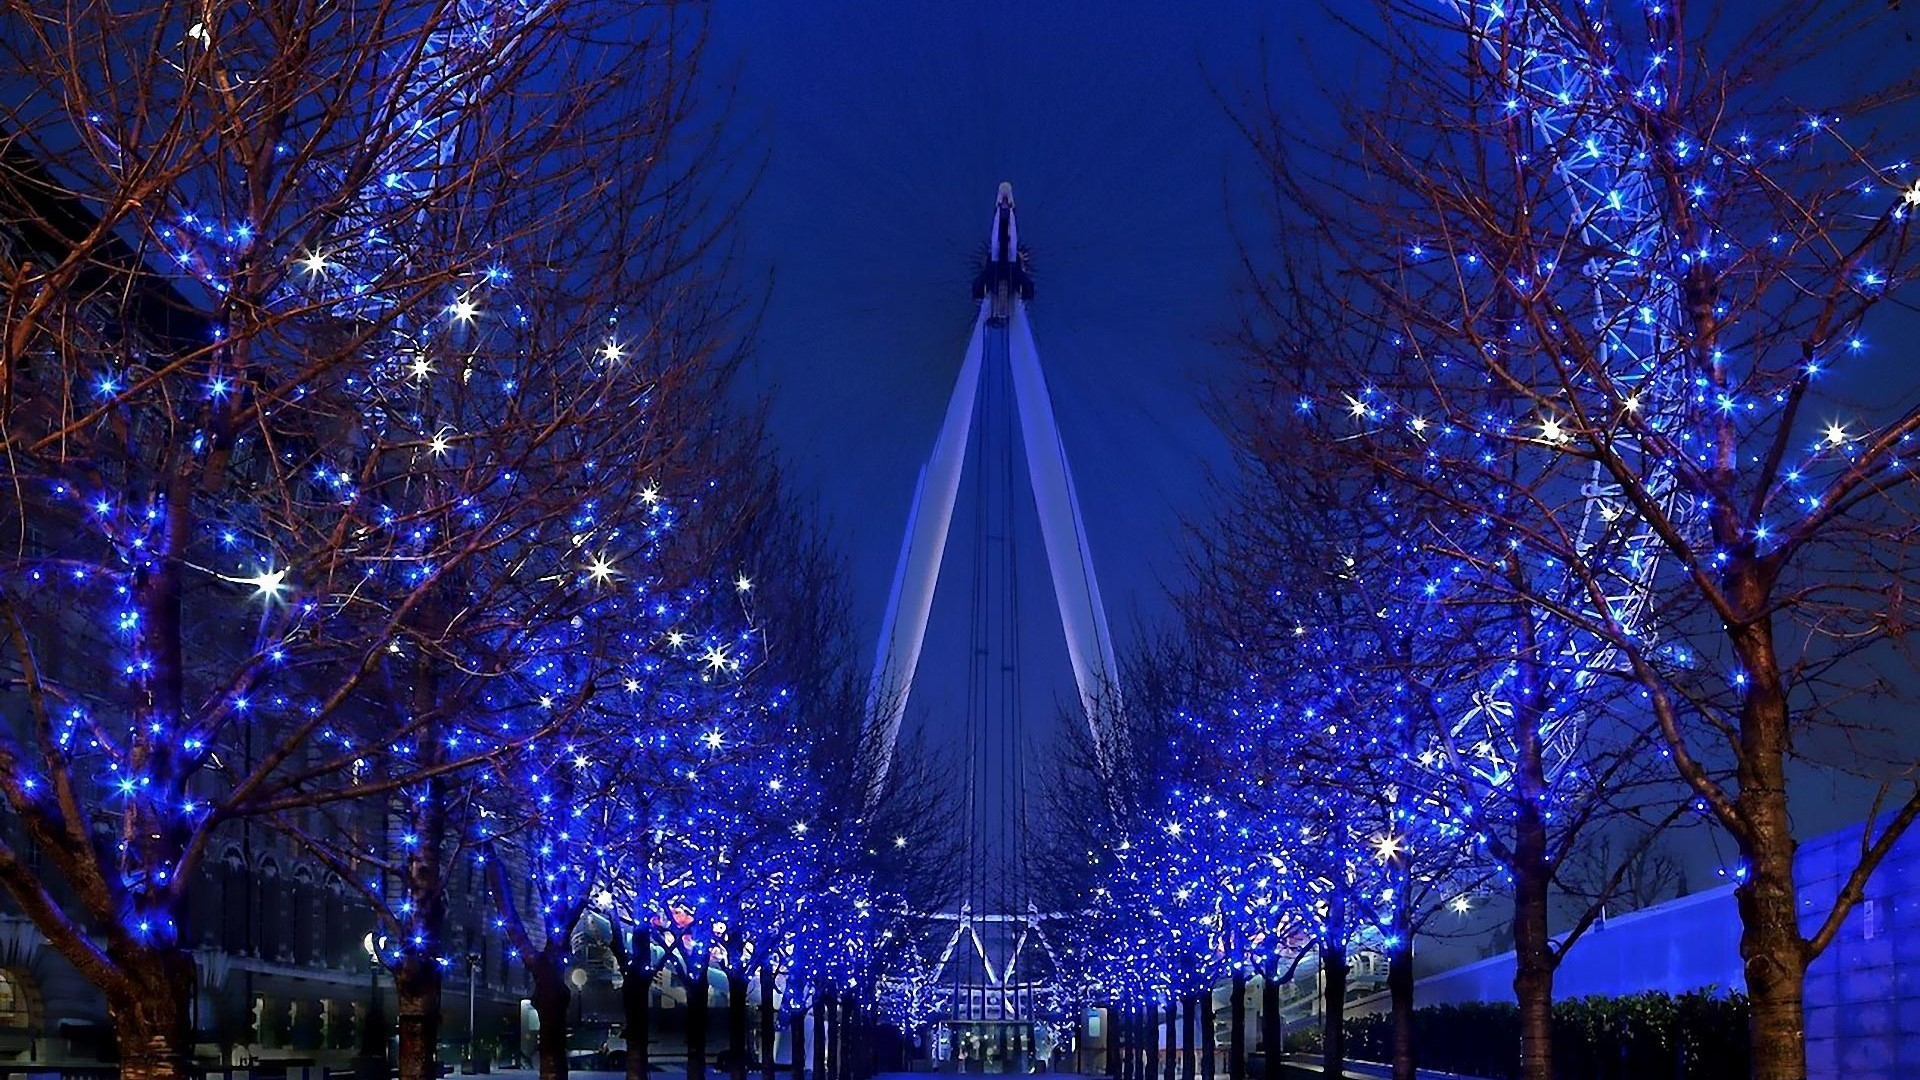 London Eye Night Lights Wallpaper   Travel HD Wallpapers 1920x1080